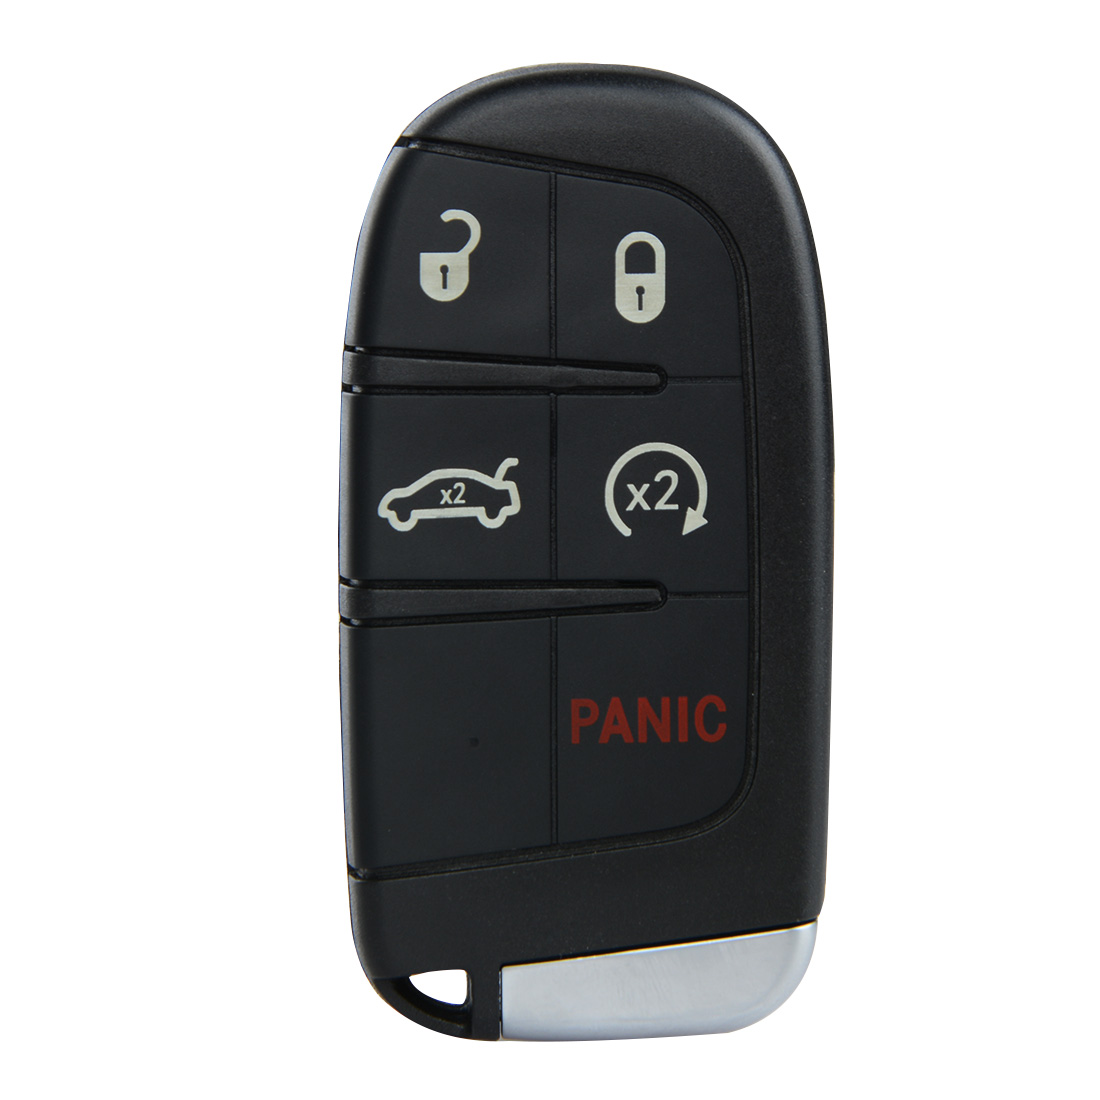 New Keyless Entry Uncut Smart Key Fob 5 Button for Dodge Charger Remote Key Fob Transmitter Push Start Fobik